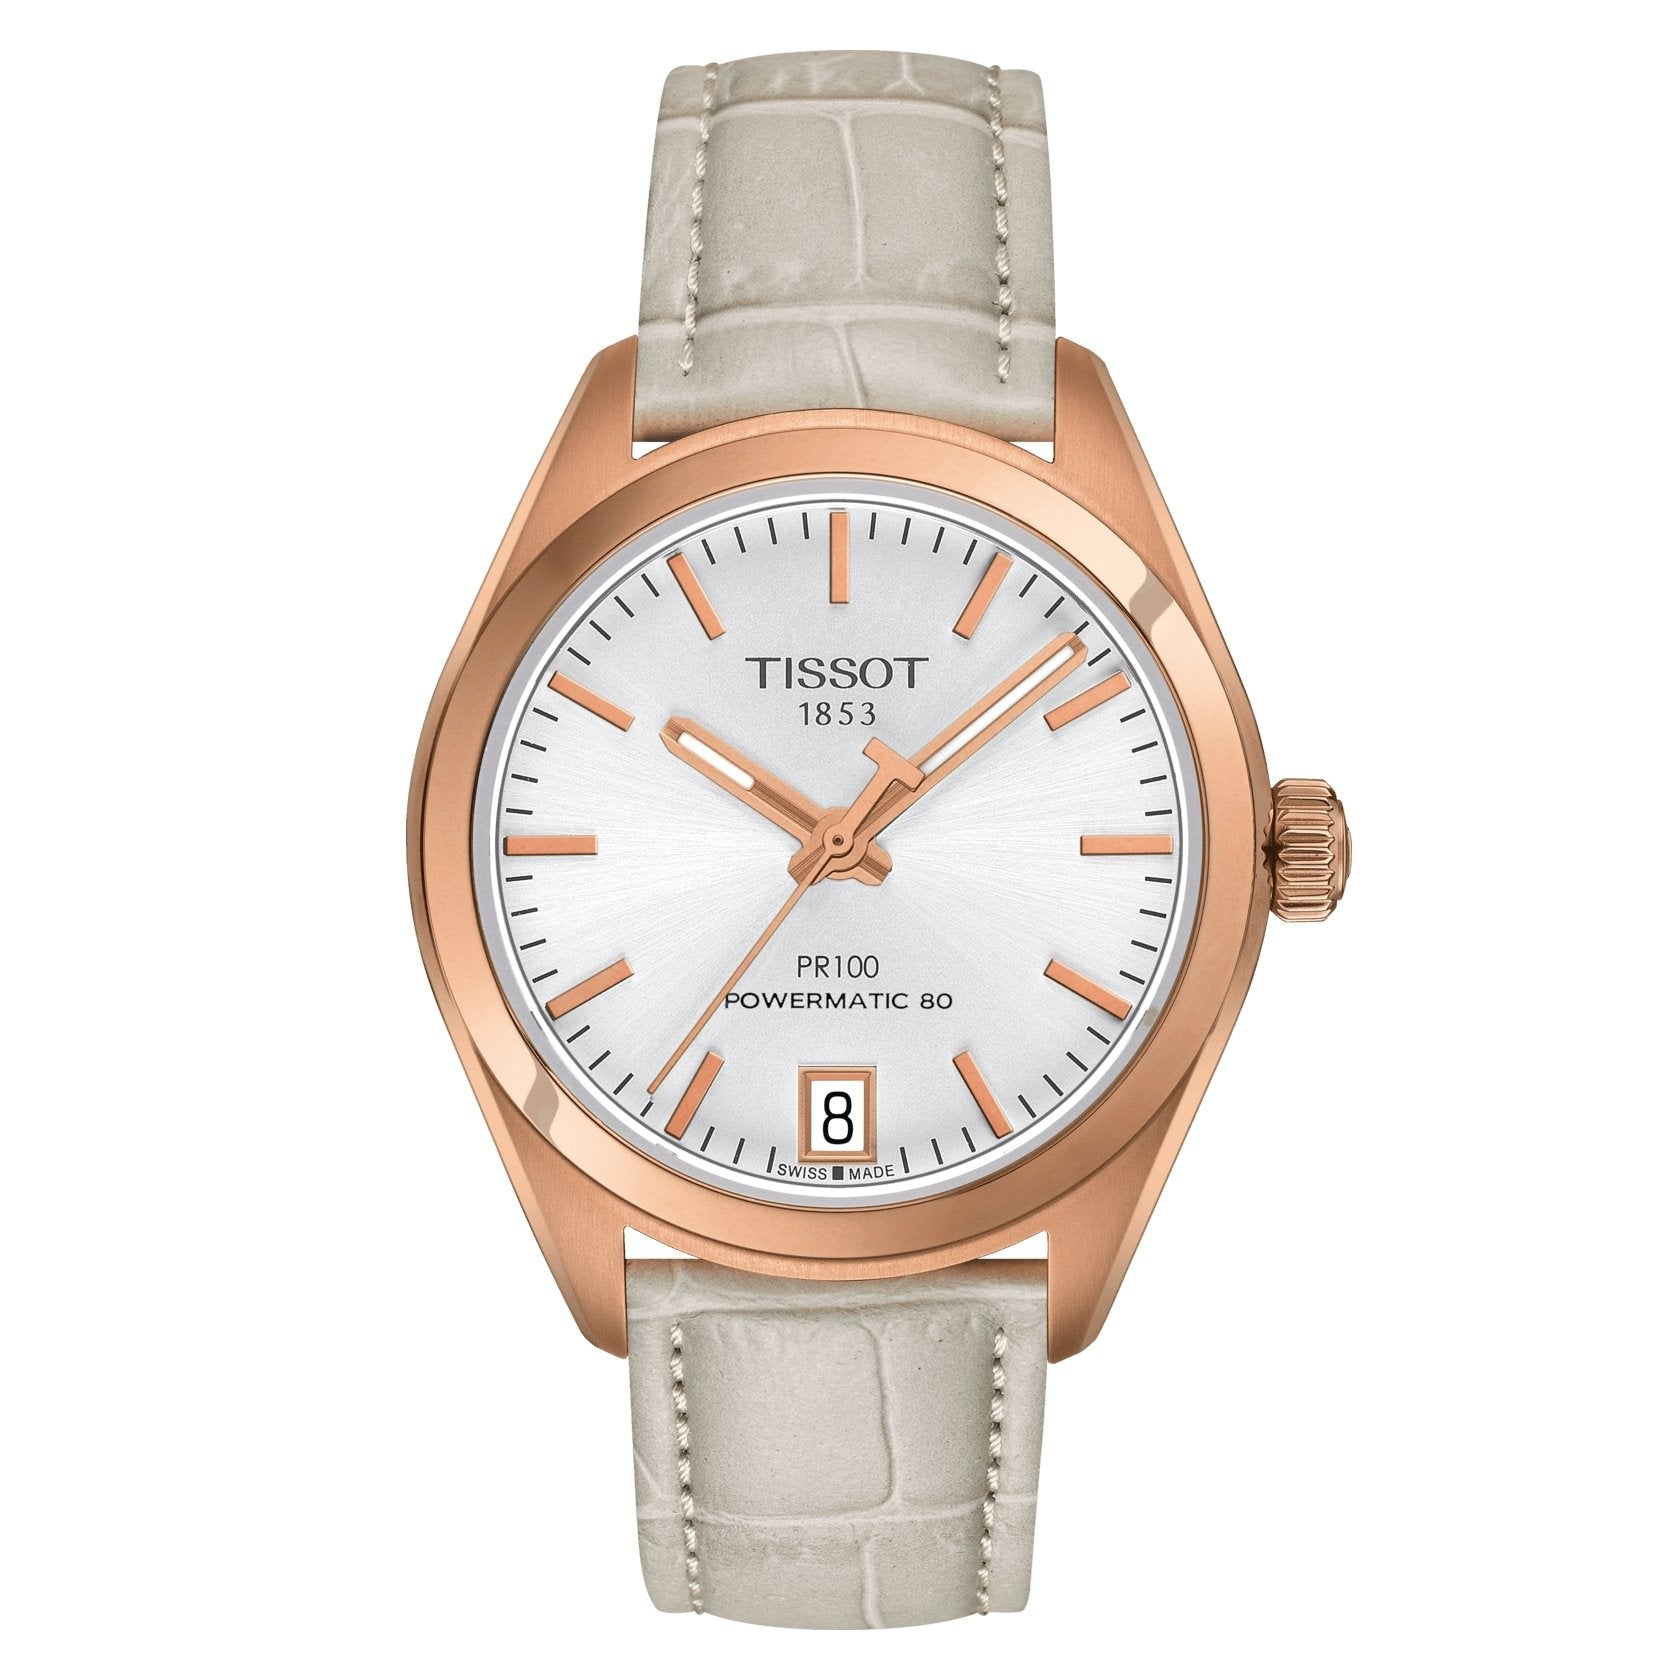 Tissot T-Classic PR 100 Rose Gold - Watches & Crystals